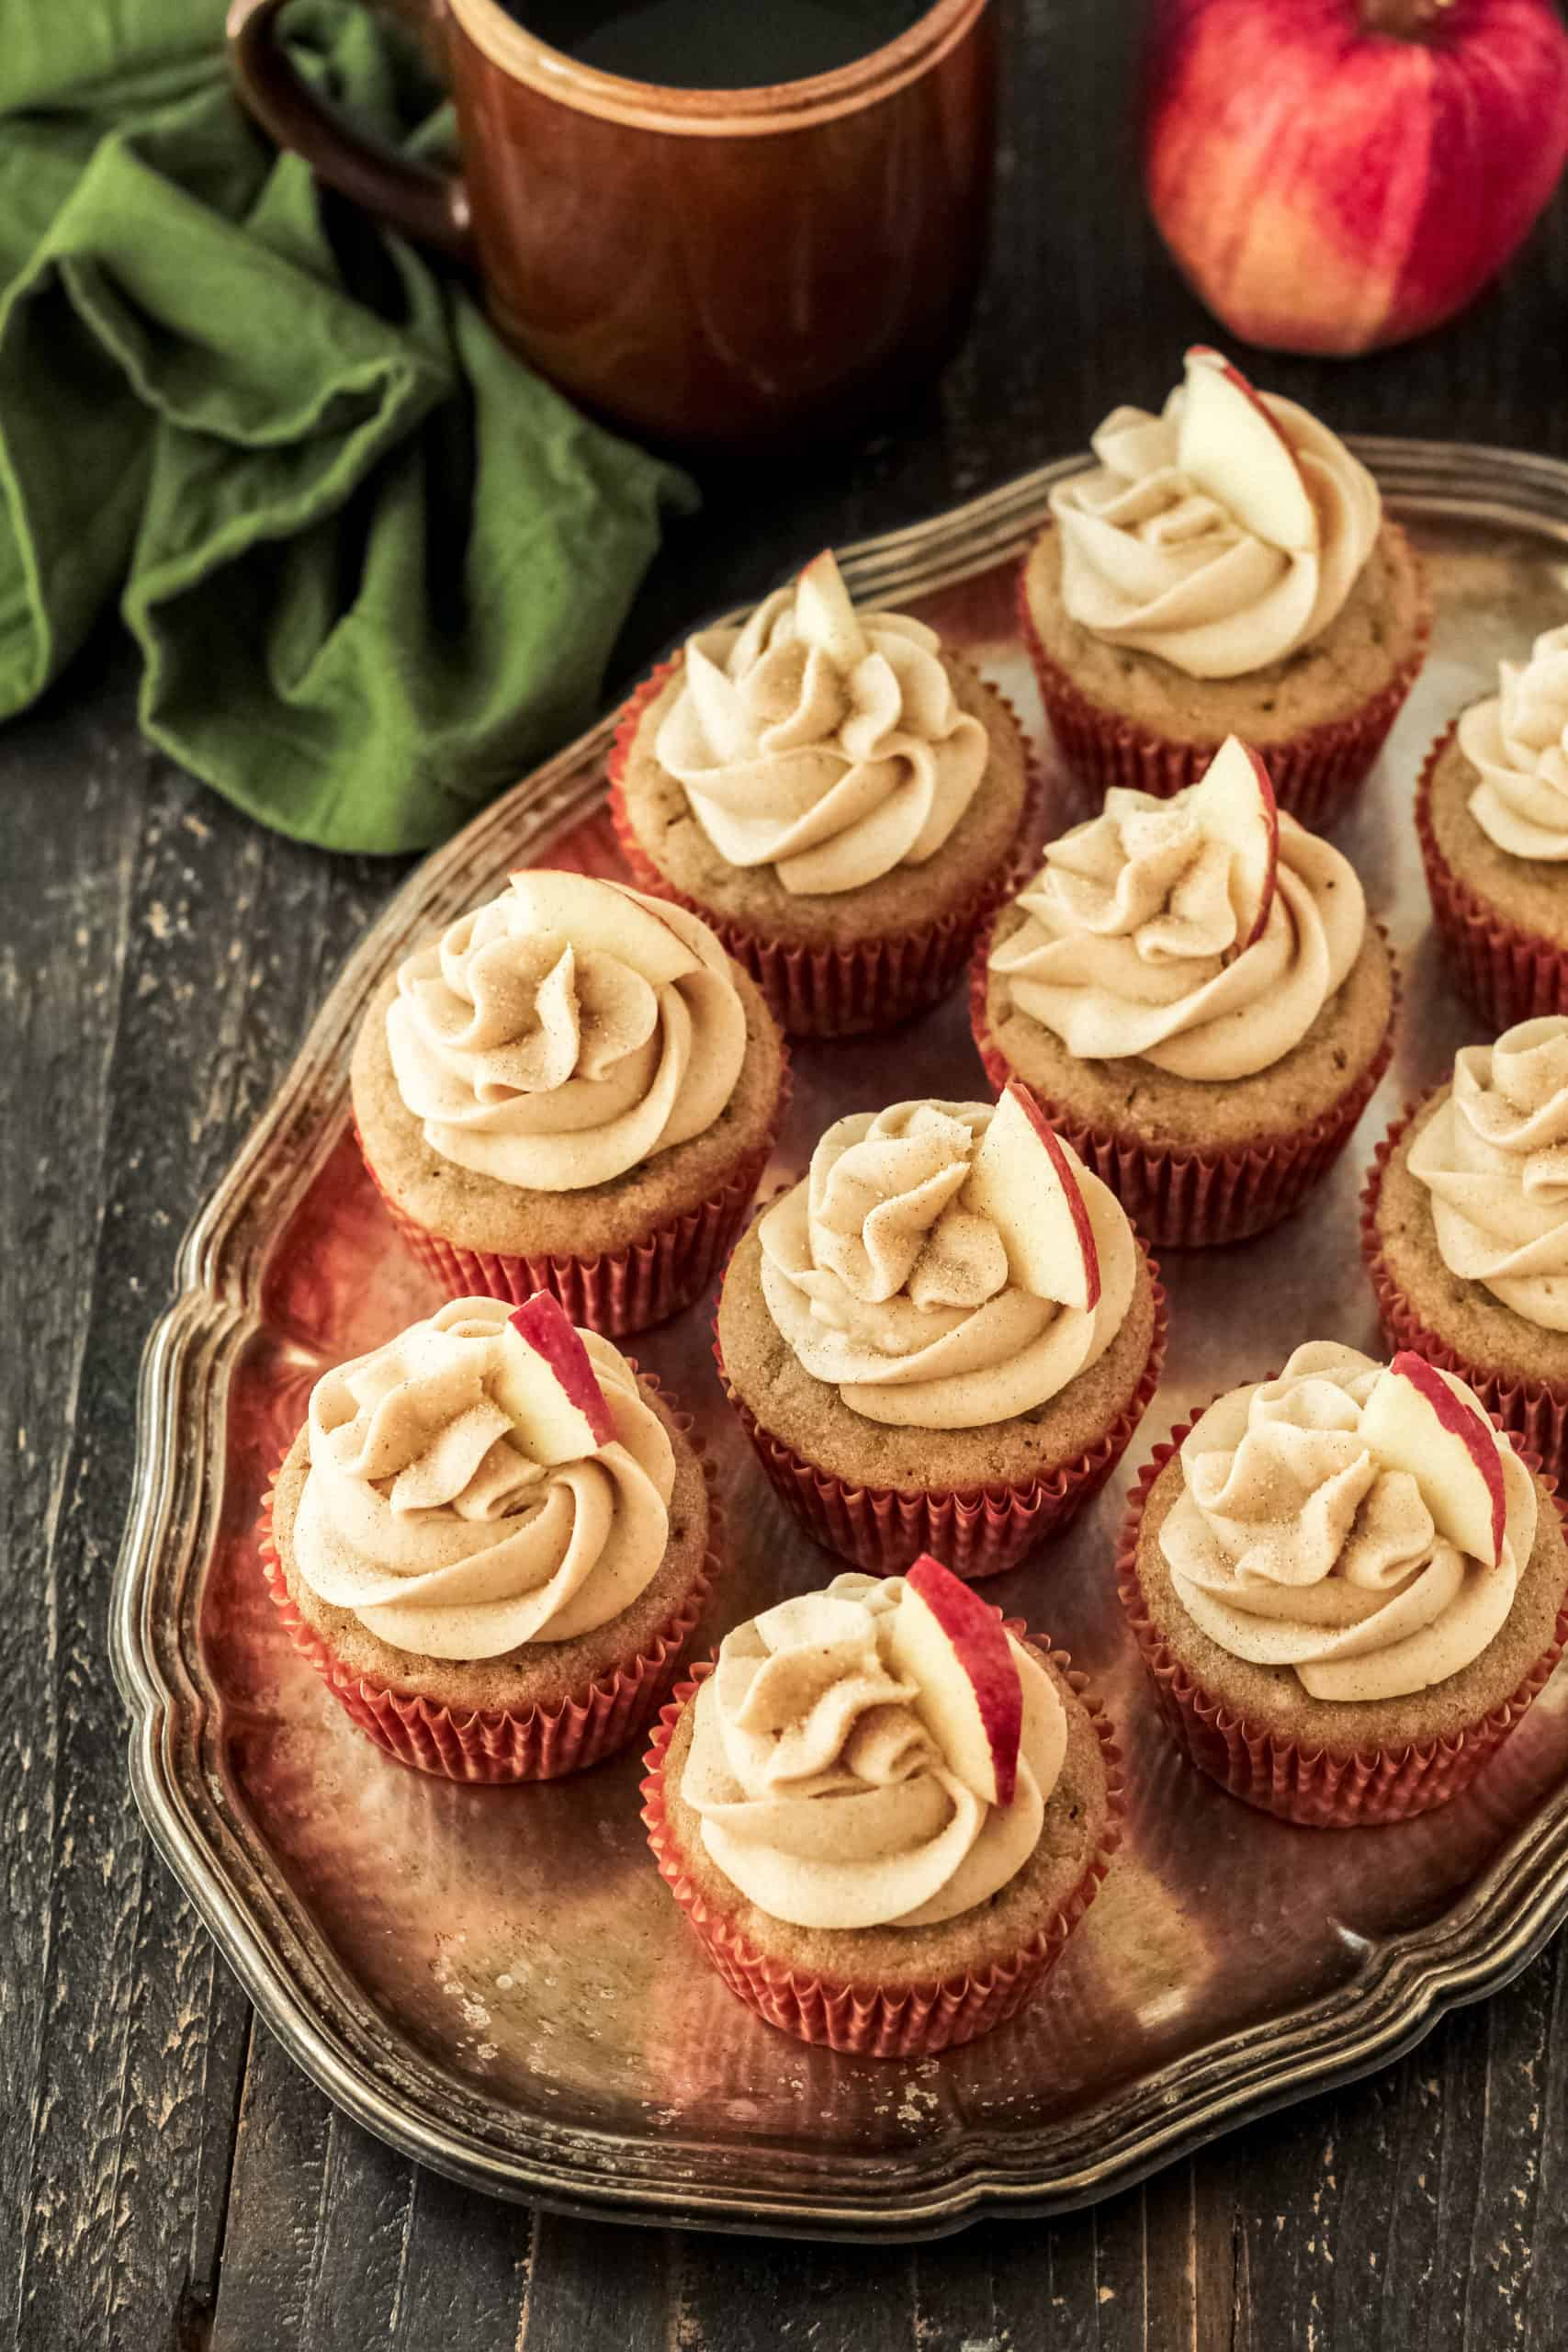 Top down view of Apple Cider Cupcakes on a tray, with apple cider and an apple in the background.